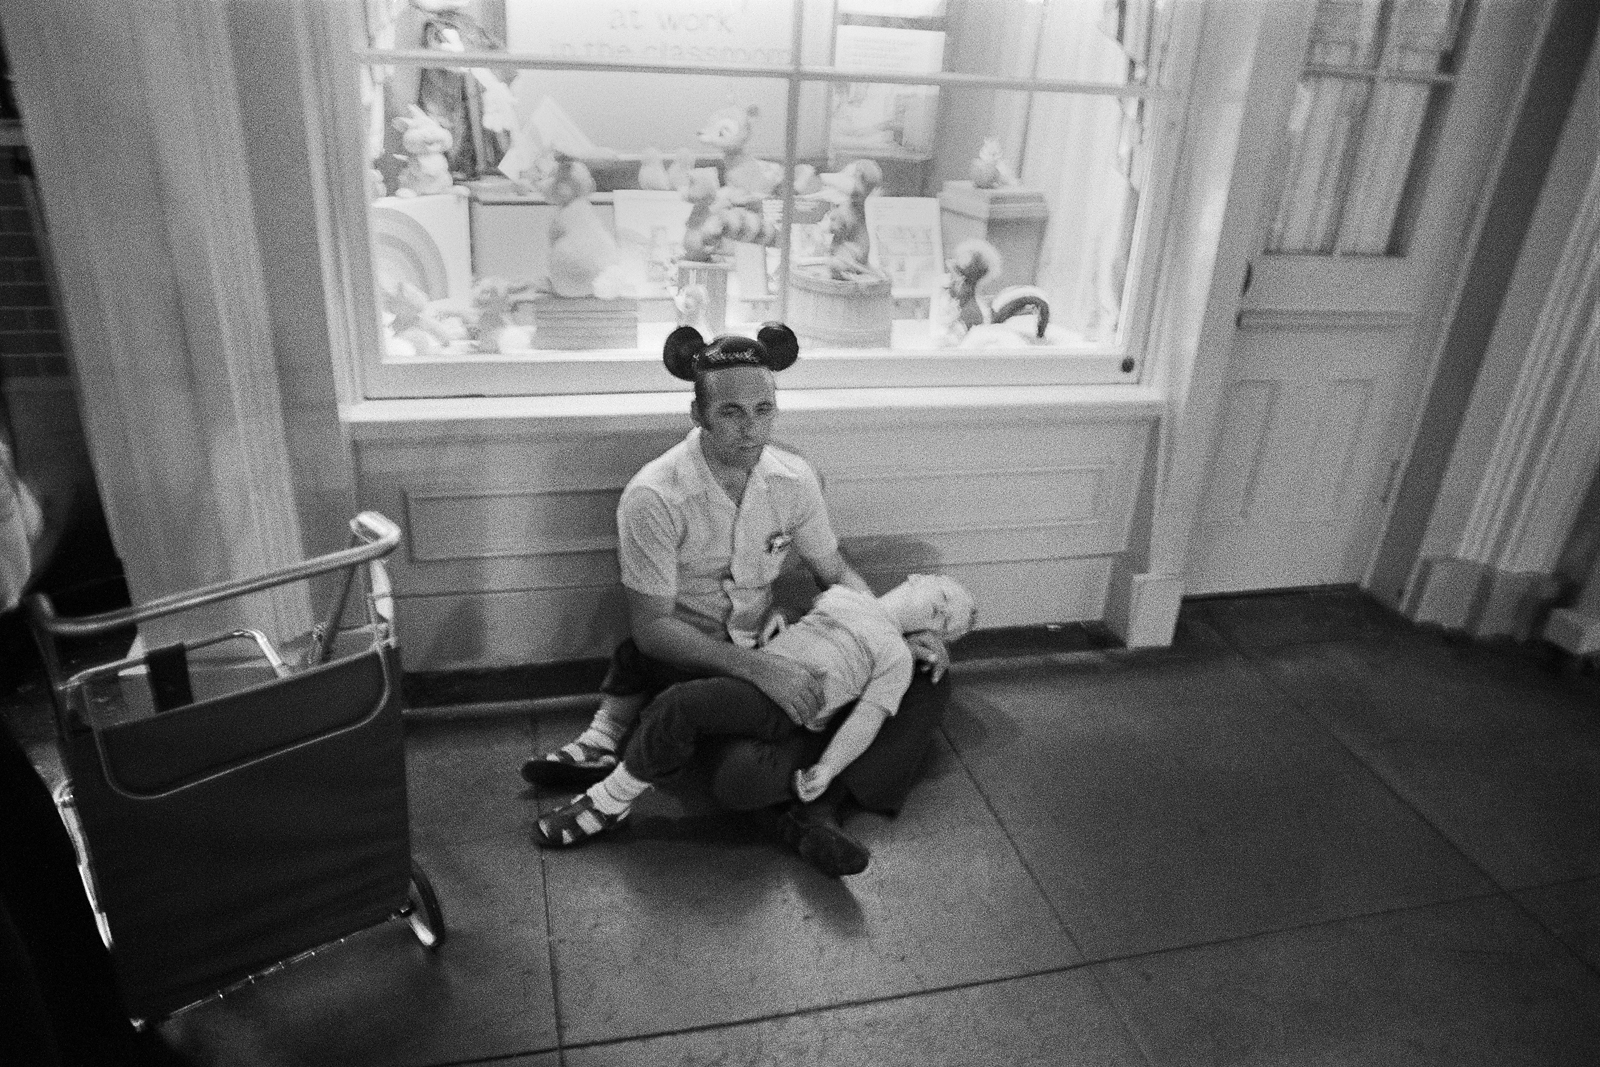 Disneyland, CA  1976 | by Don Hudson